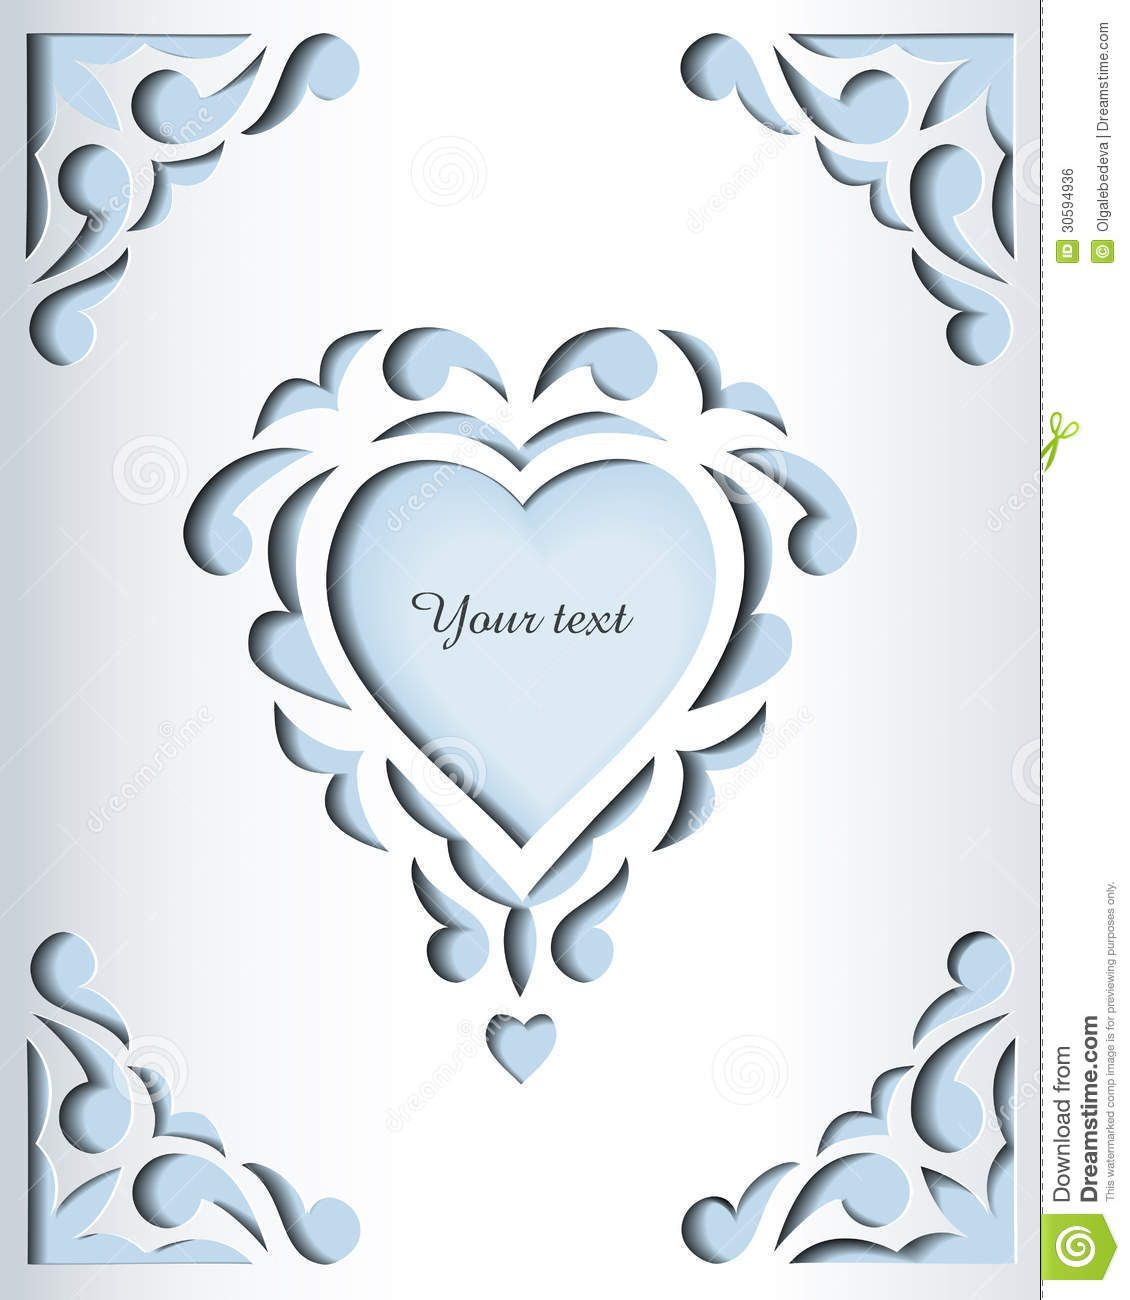 008 Unforgettable Paper Cut Out Template Sample  Templates Flower Doll FreeFull